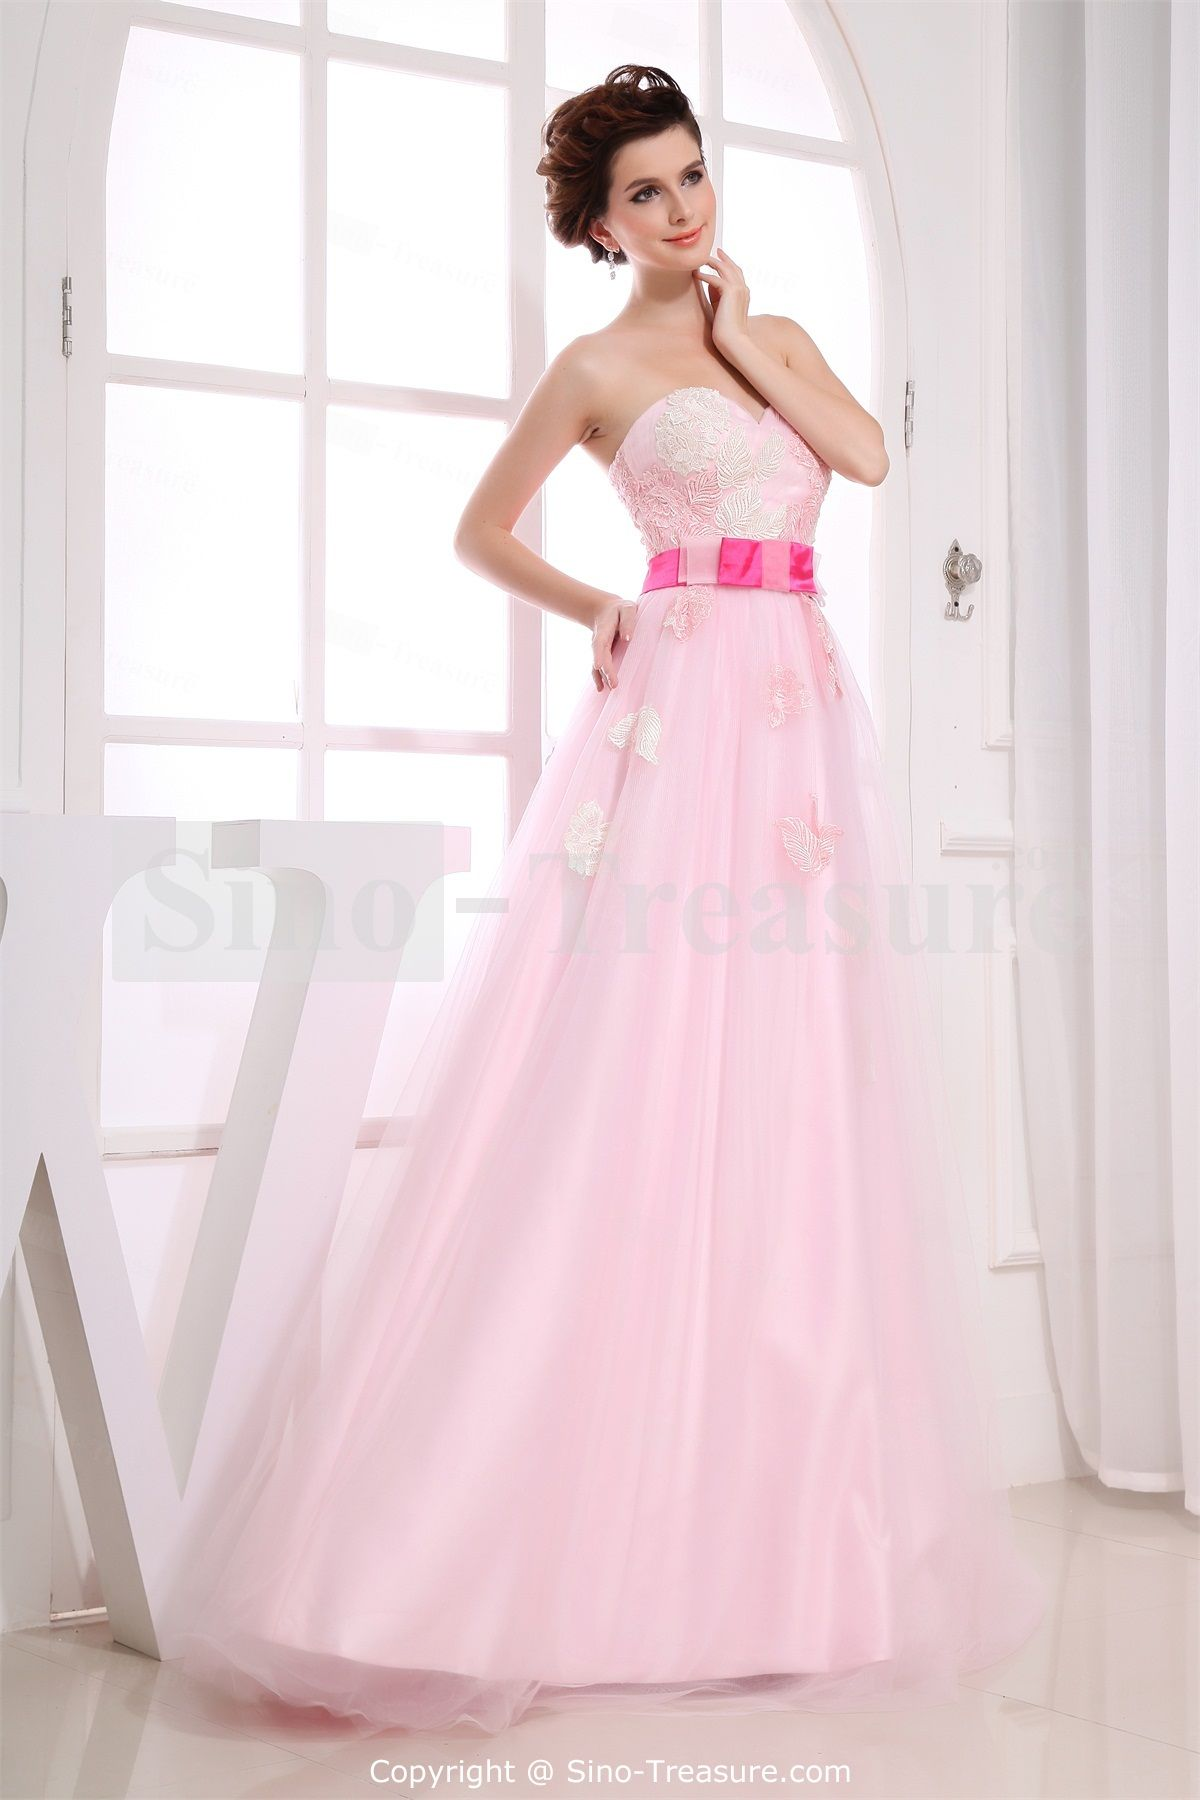 This beautiful dress is designed by sinotreasurehope you like it